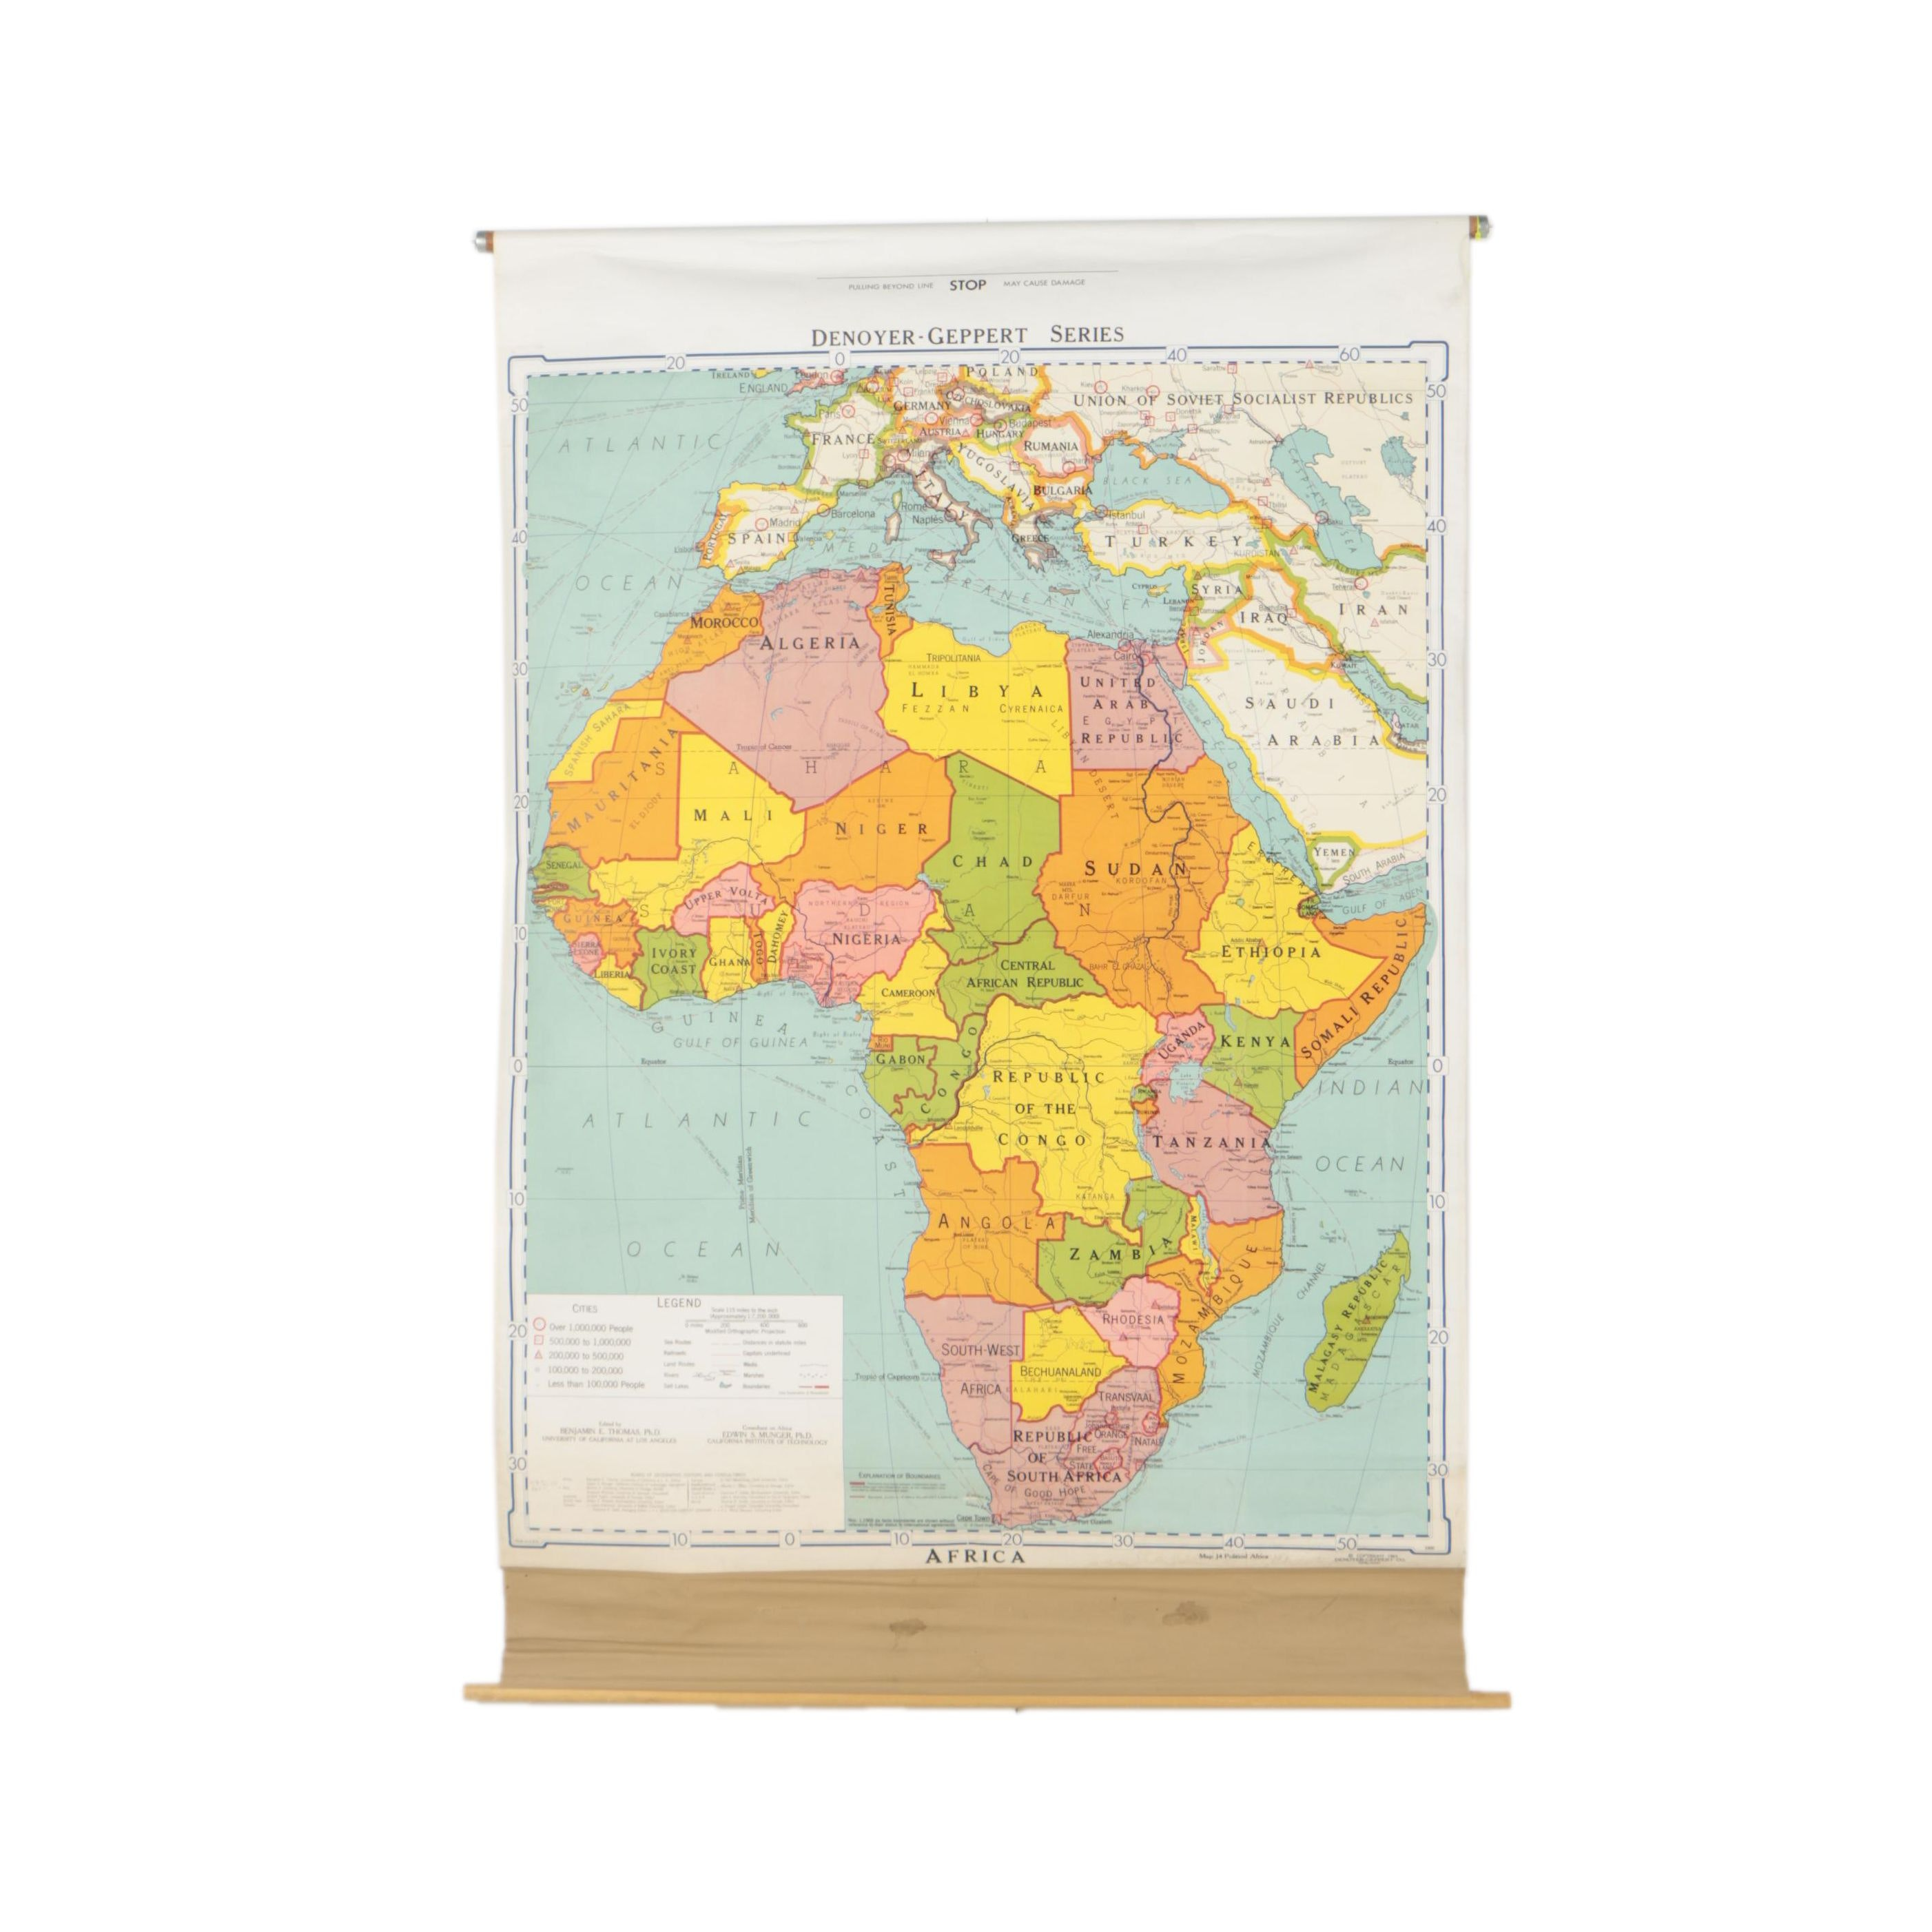 1966 Denoyer-Geppert Color Lithograph Wall Map of Africa